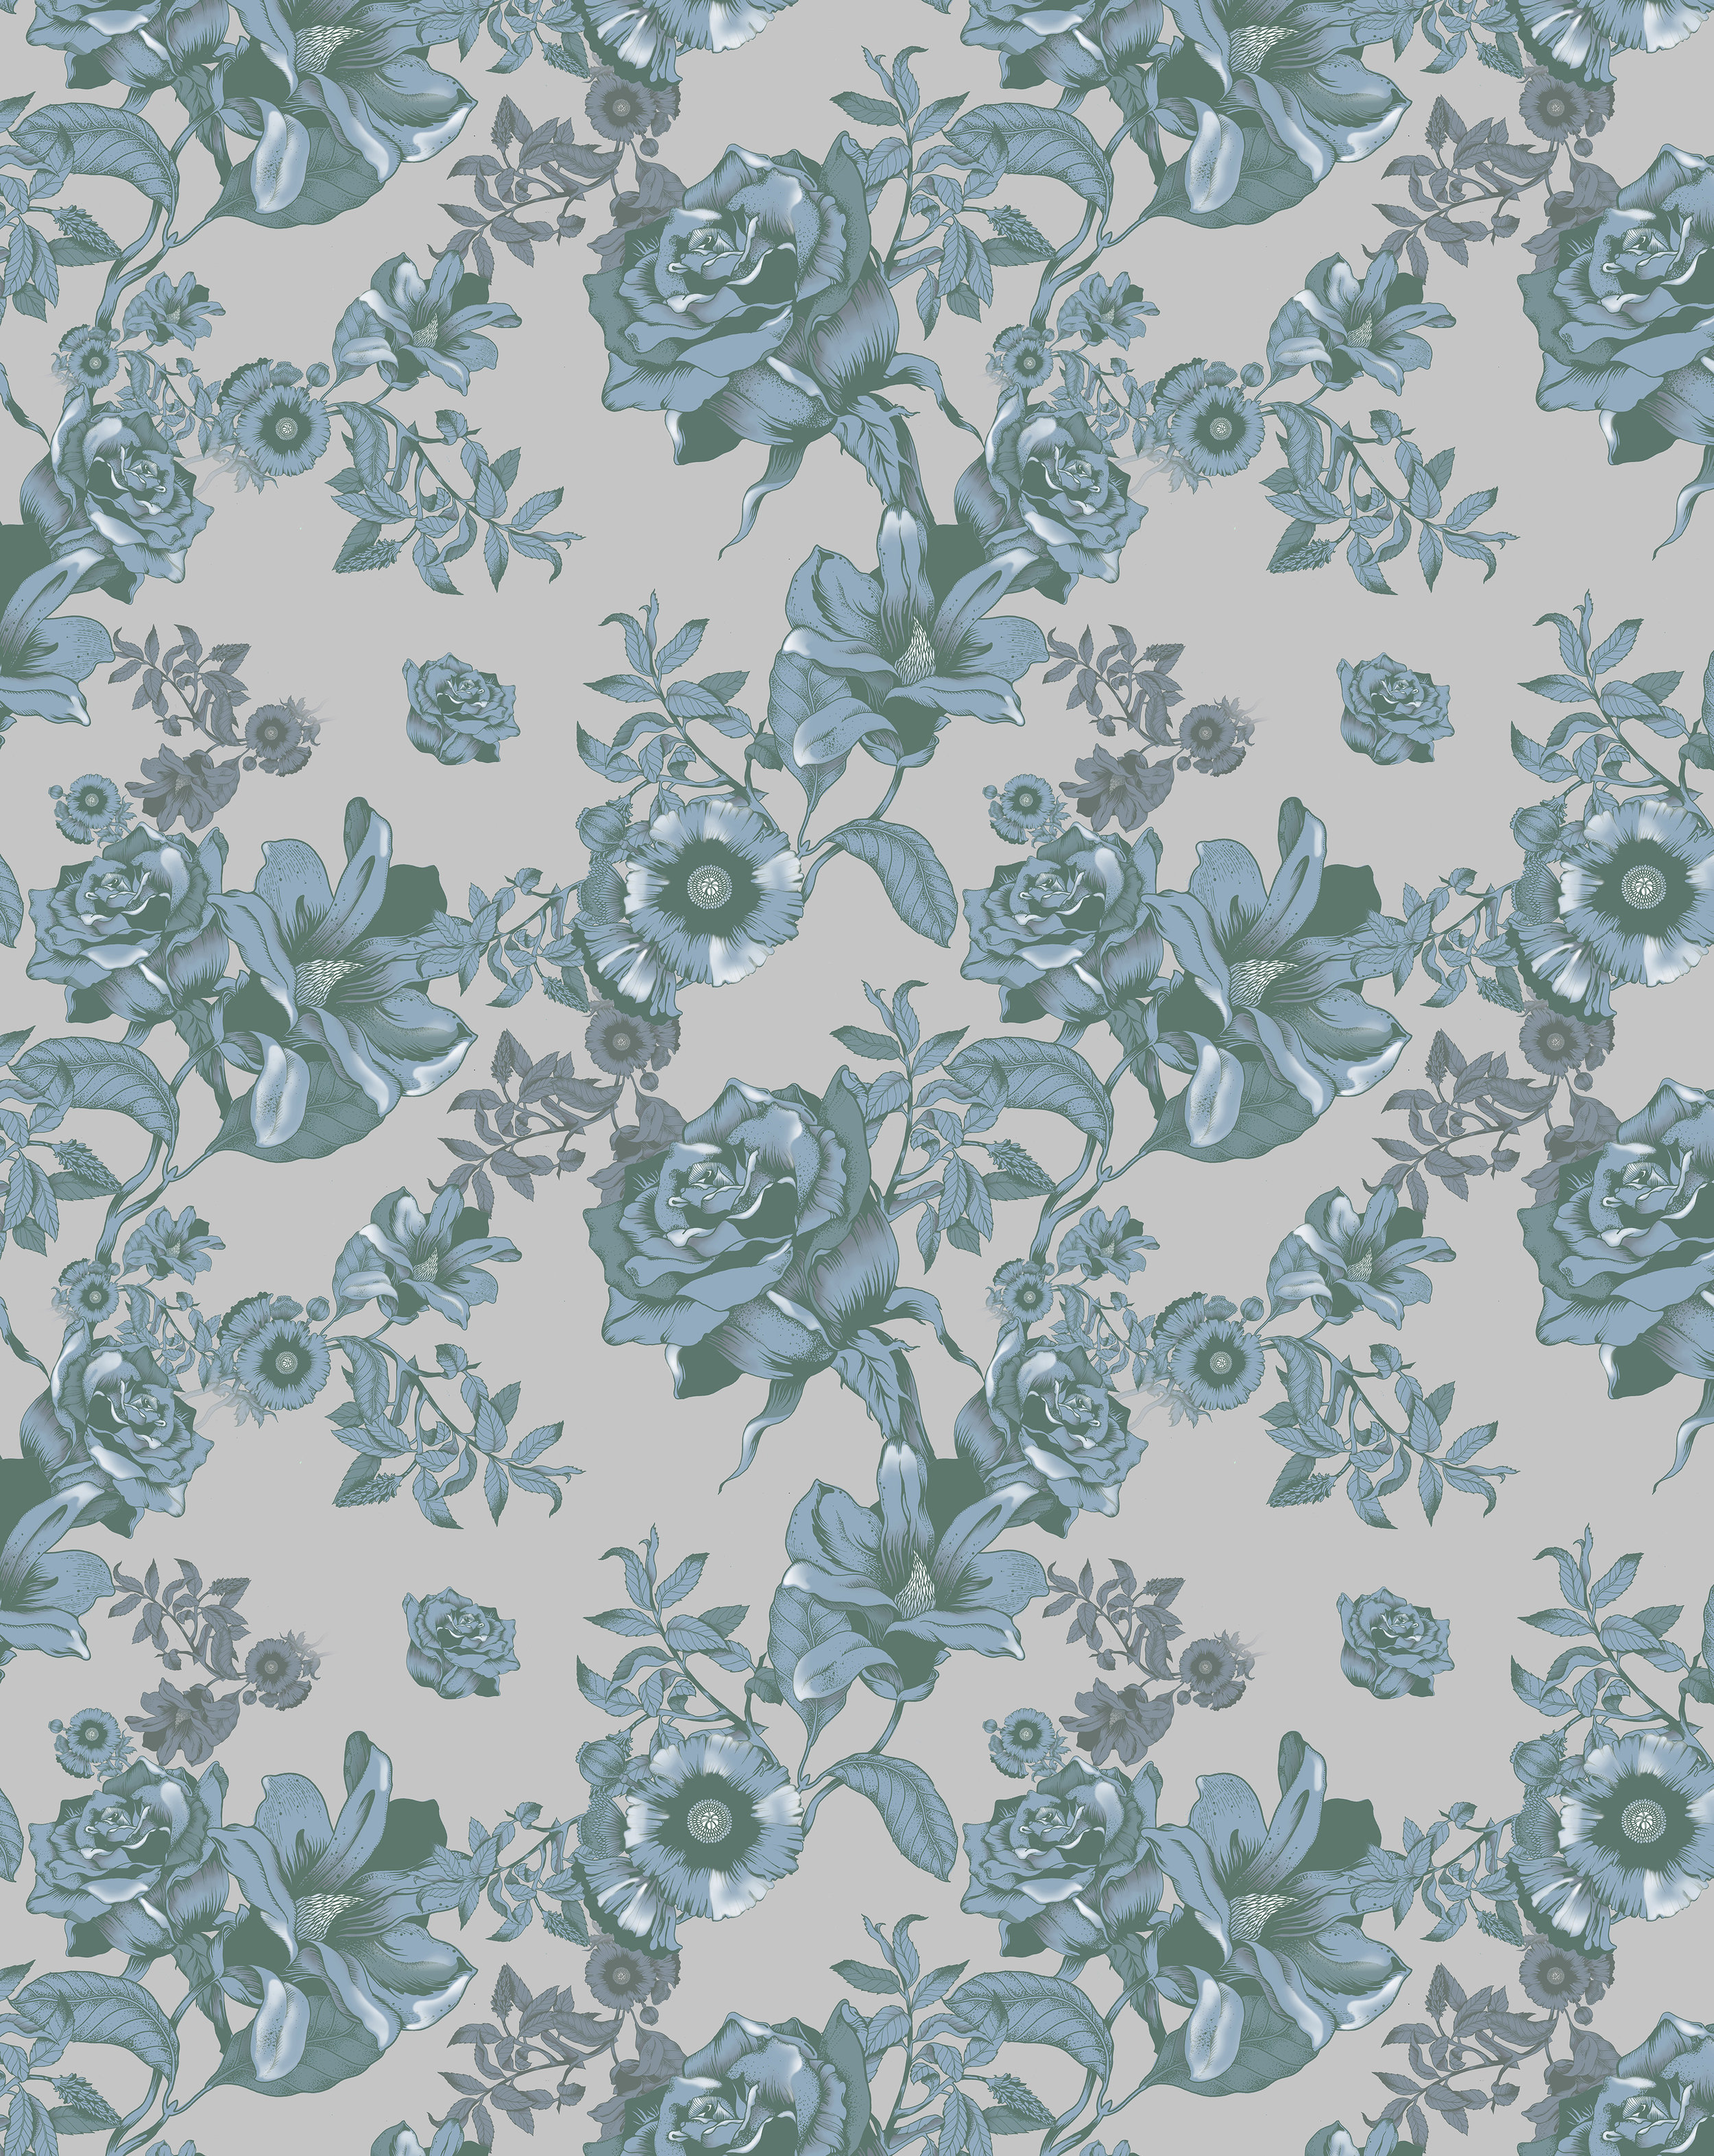 PommeChan_Pattern_Final2_Blue and Grey_Lowres_15x15.jpg